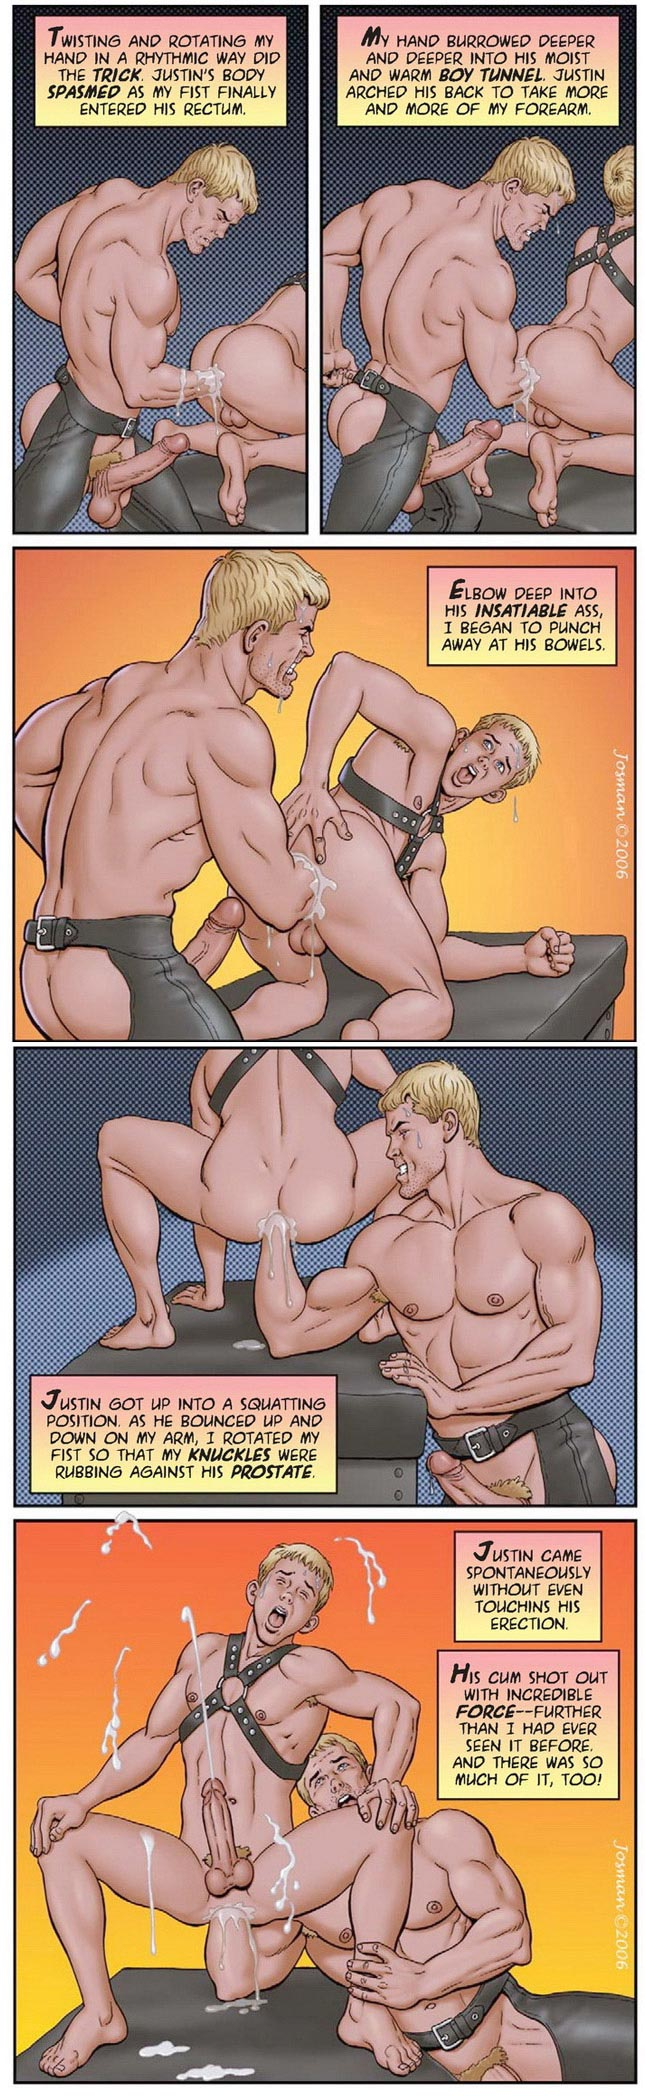 Erotic art: 'My wild and raunchy son' part 3 by Josman